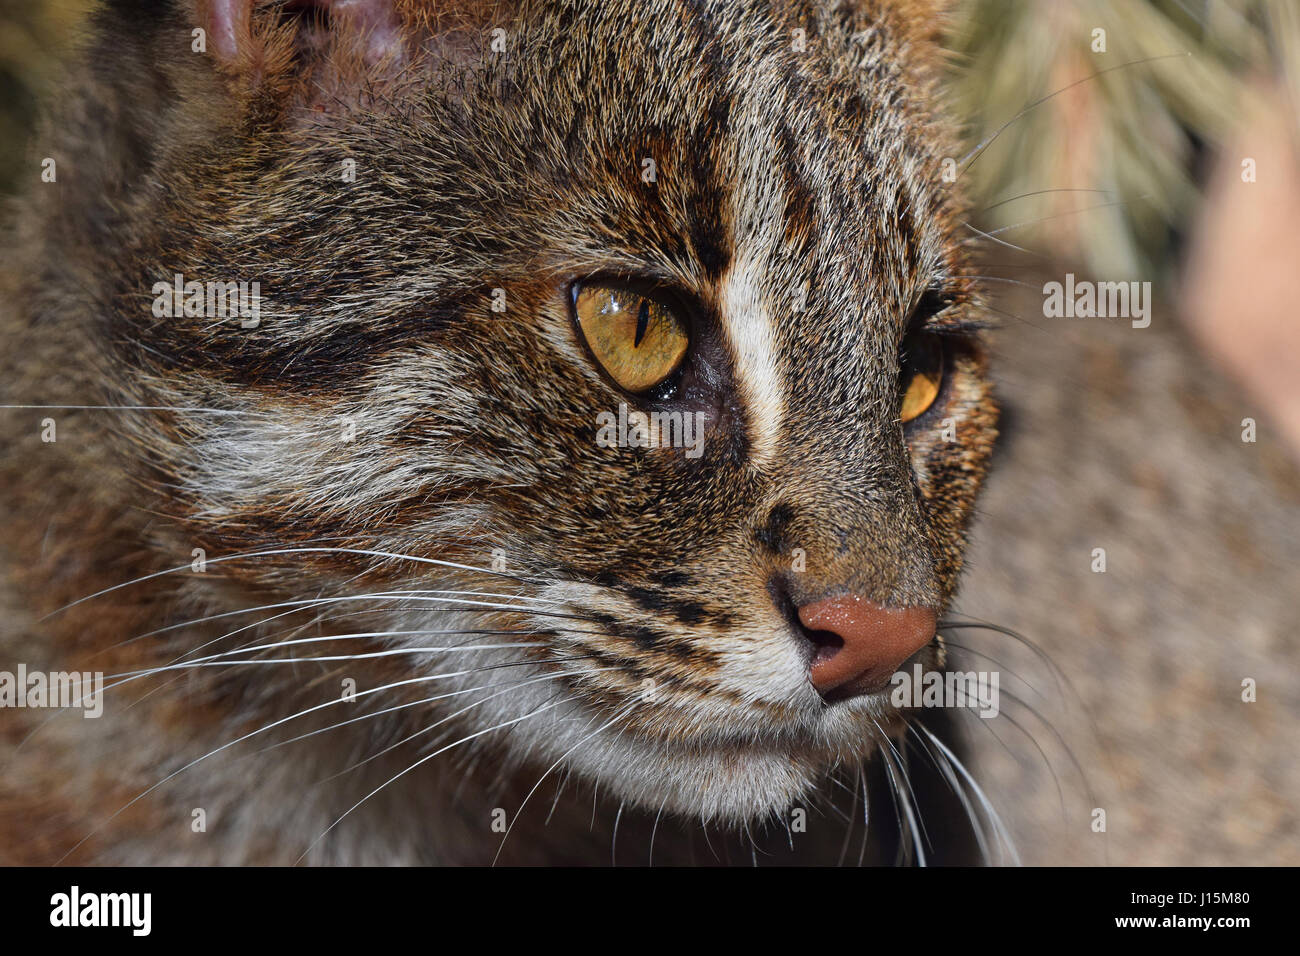 https://c8.alamy.com/comp/J15M80/close-up-side-portrait-of-fishing-cat-prionailurus-viverrinus-looking-J15M80.jpg